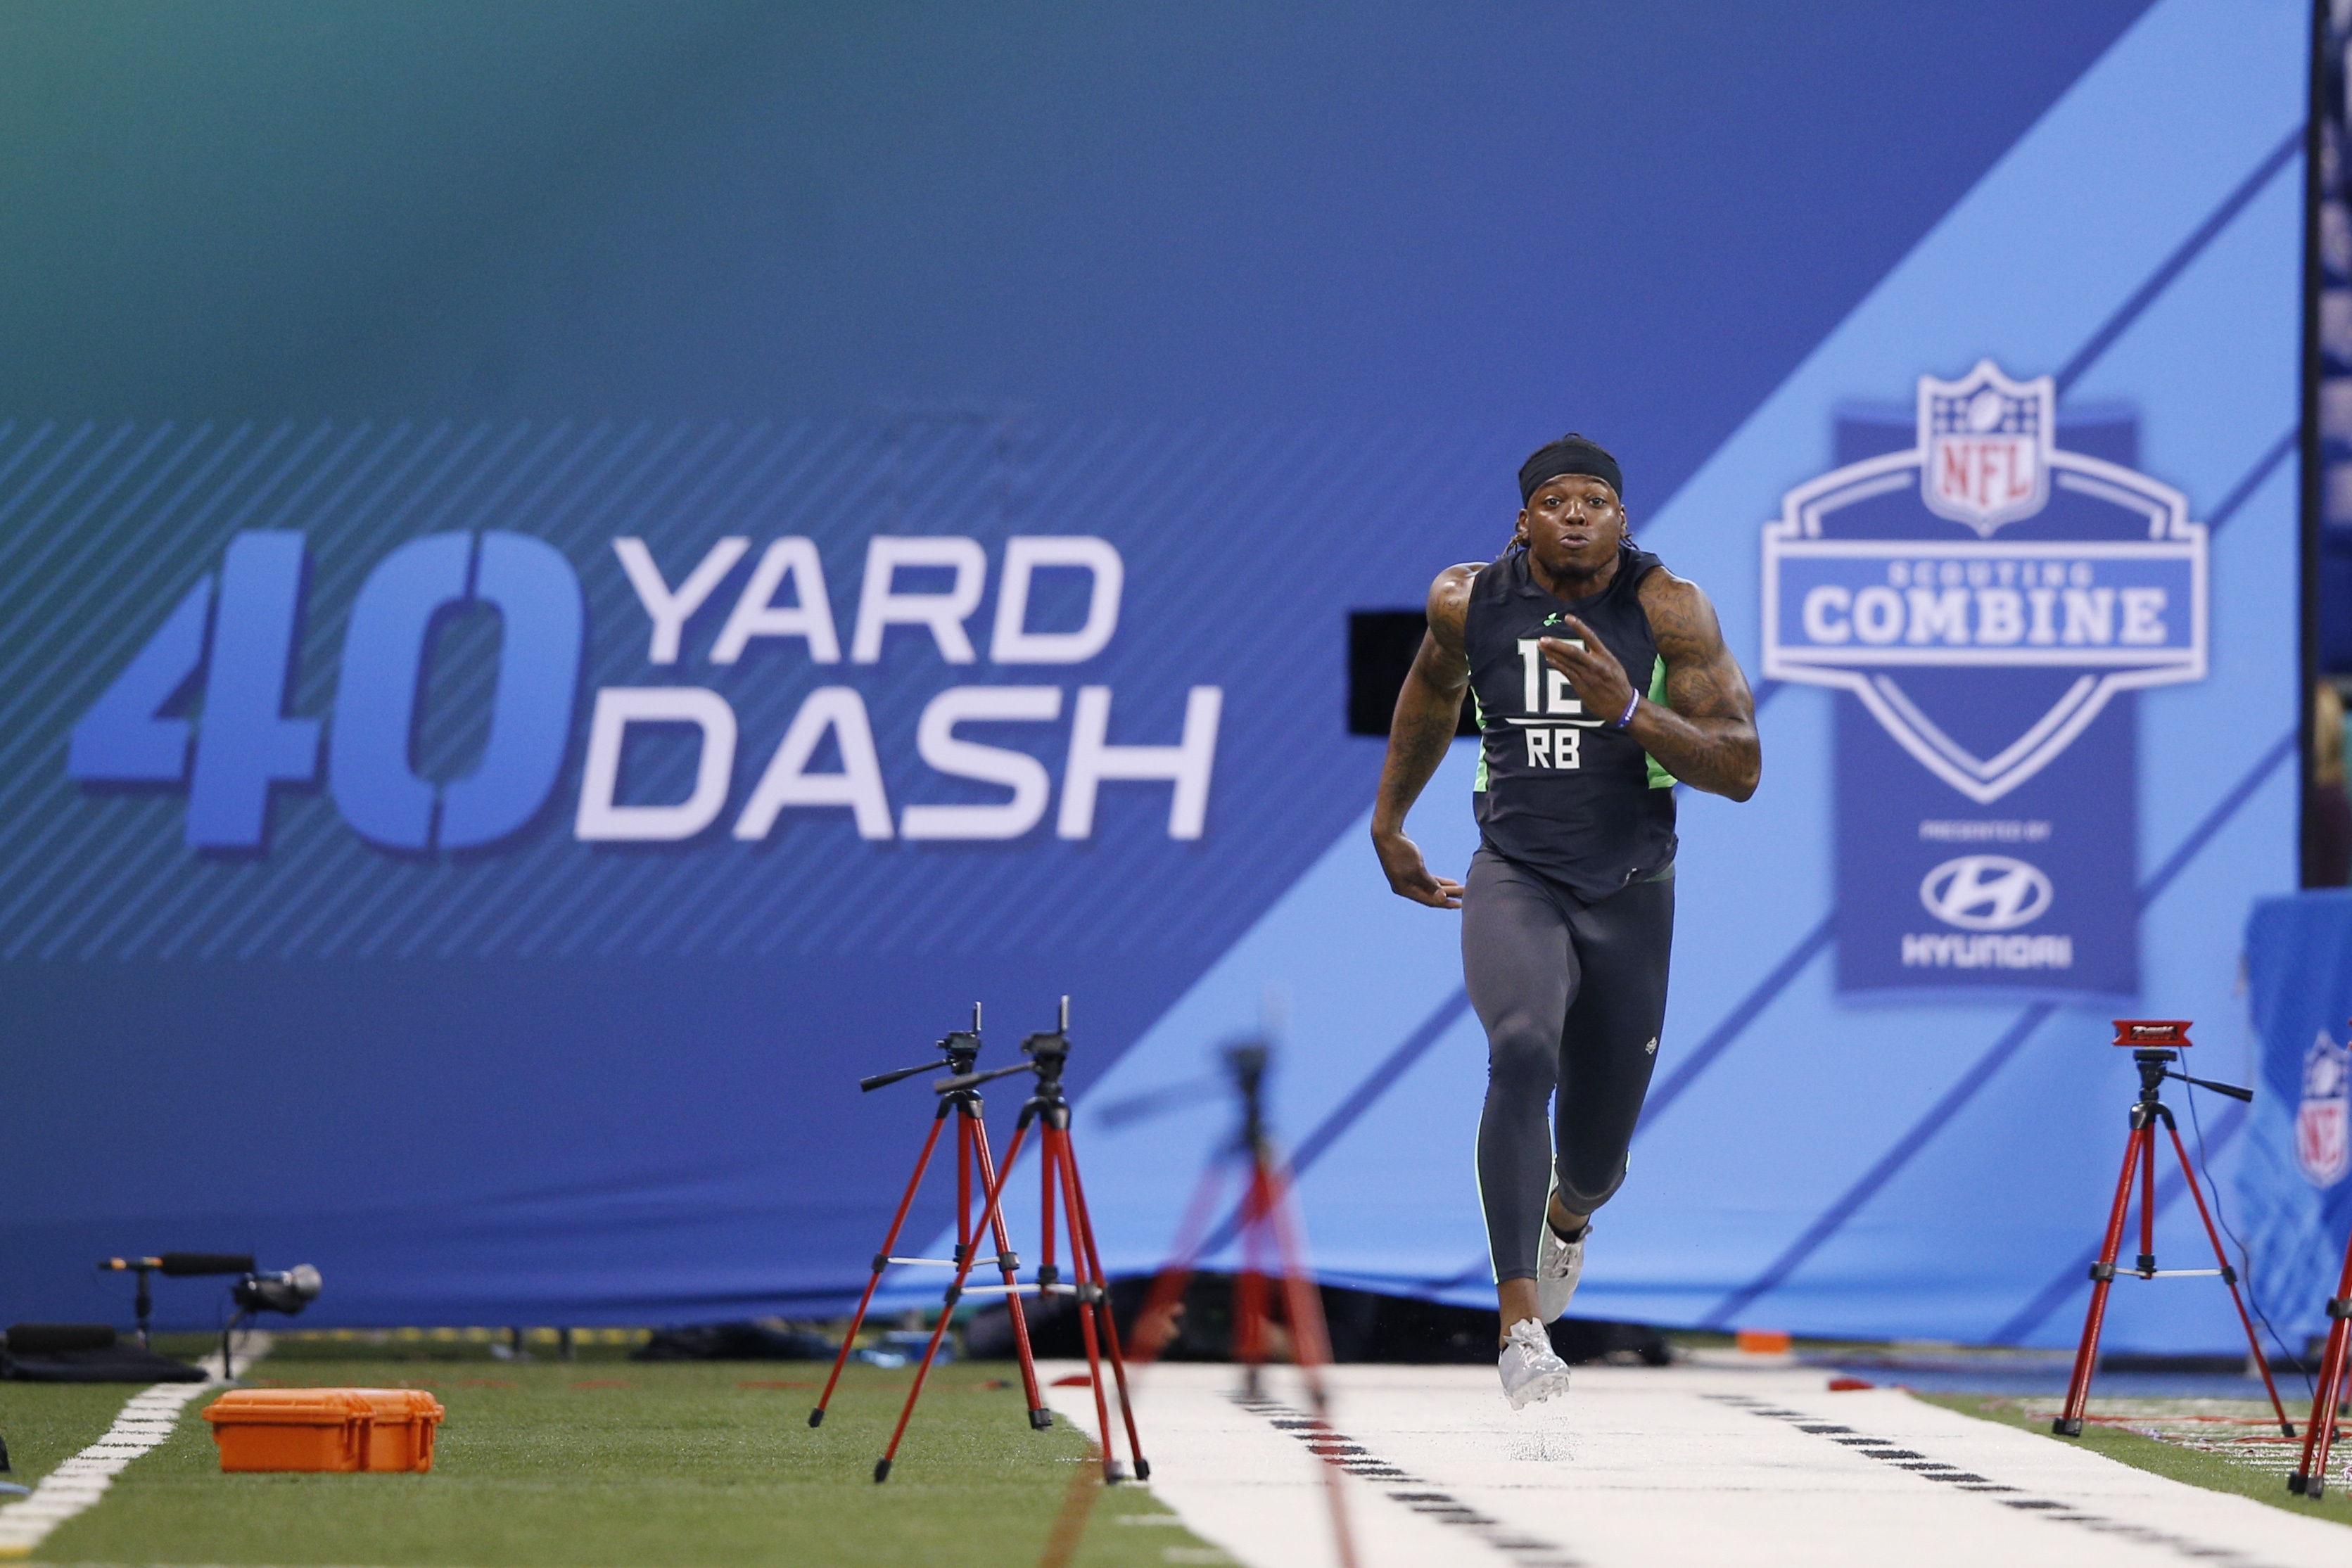 Alabama running back Derrick Henry of runs the 40-yard dash Friday during the 2016 NFL Scouting Combine in Indianapolis.